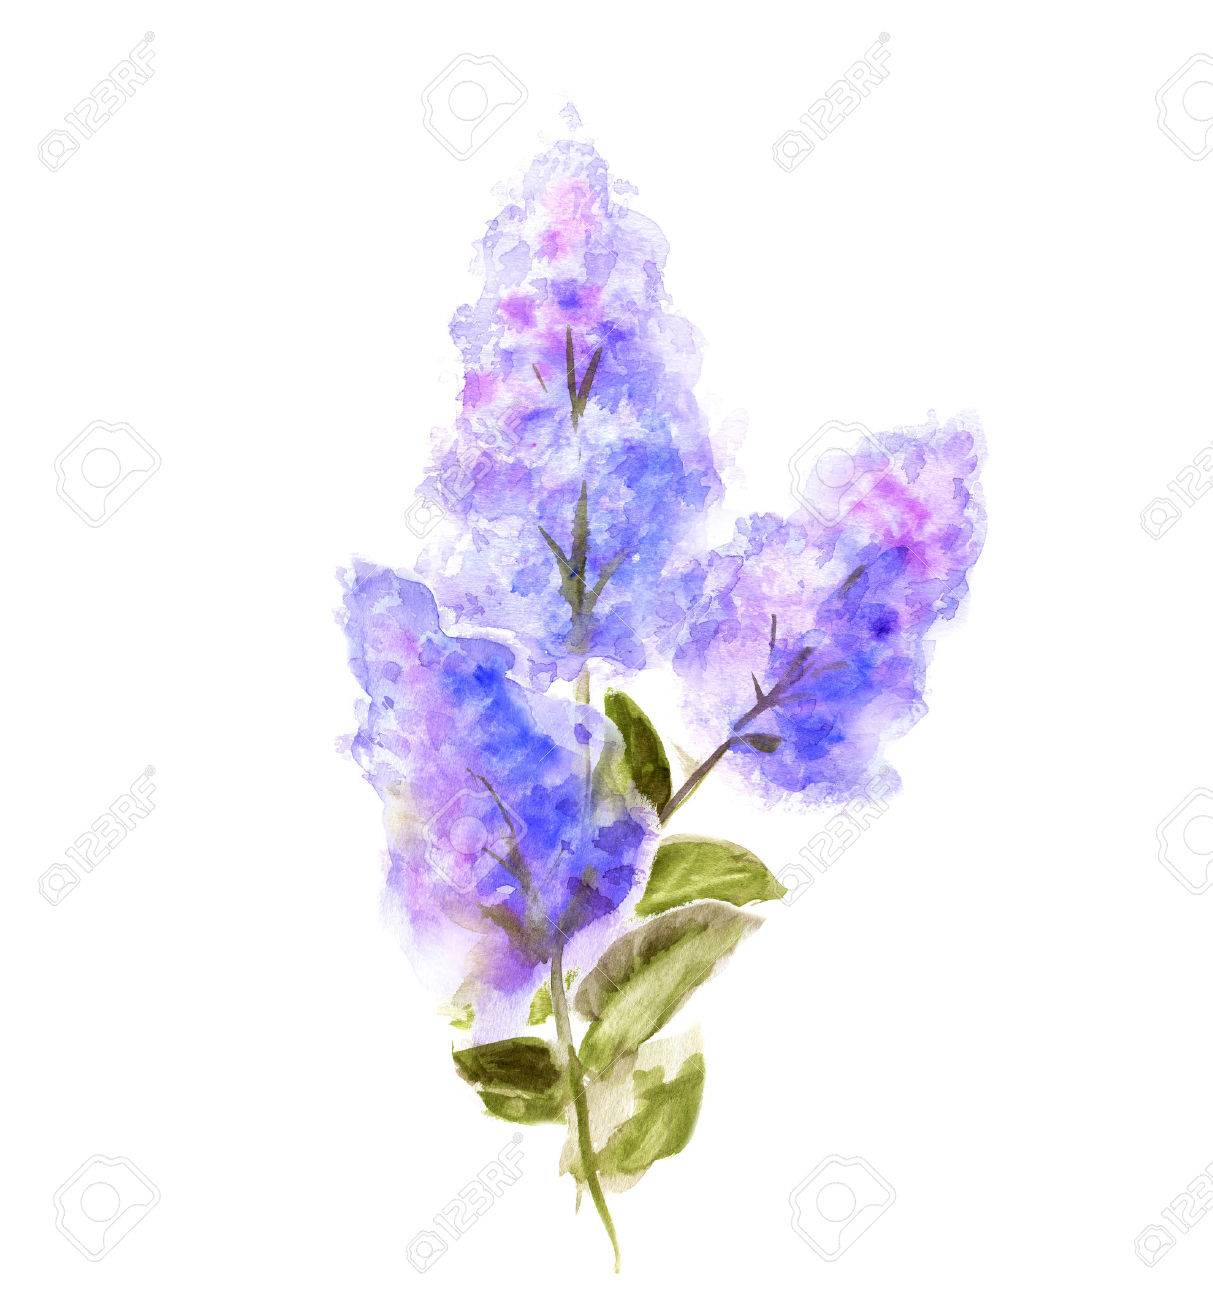 Hand Painted Watercolor Flower Lilac Isolated On White Wet Painting